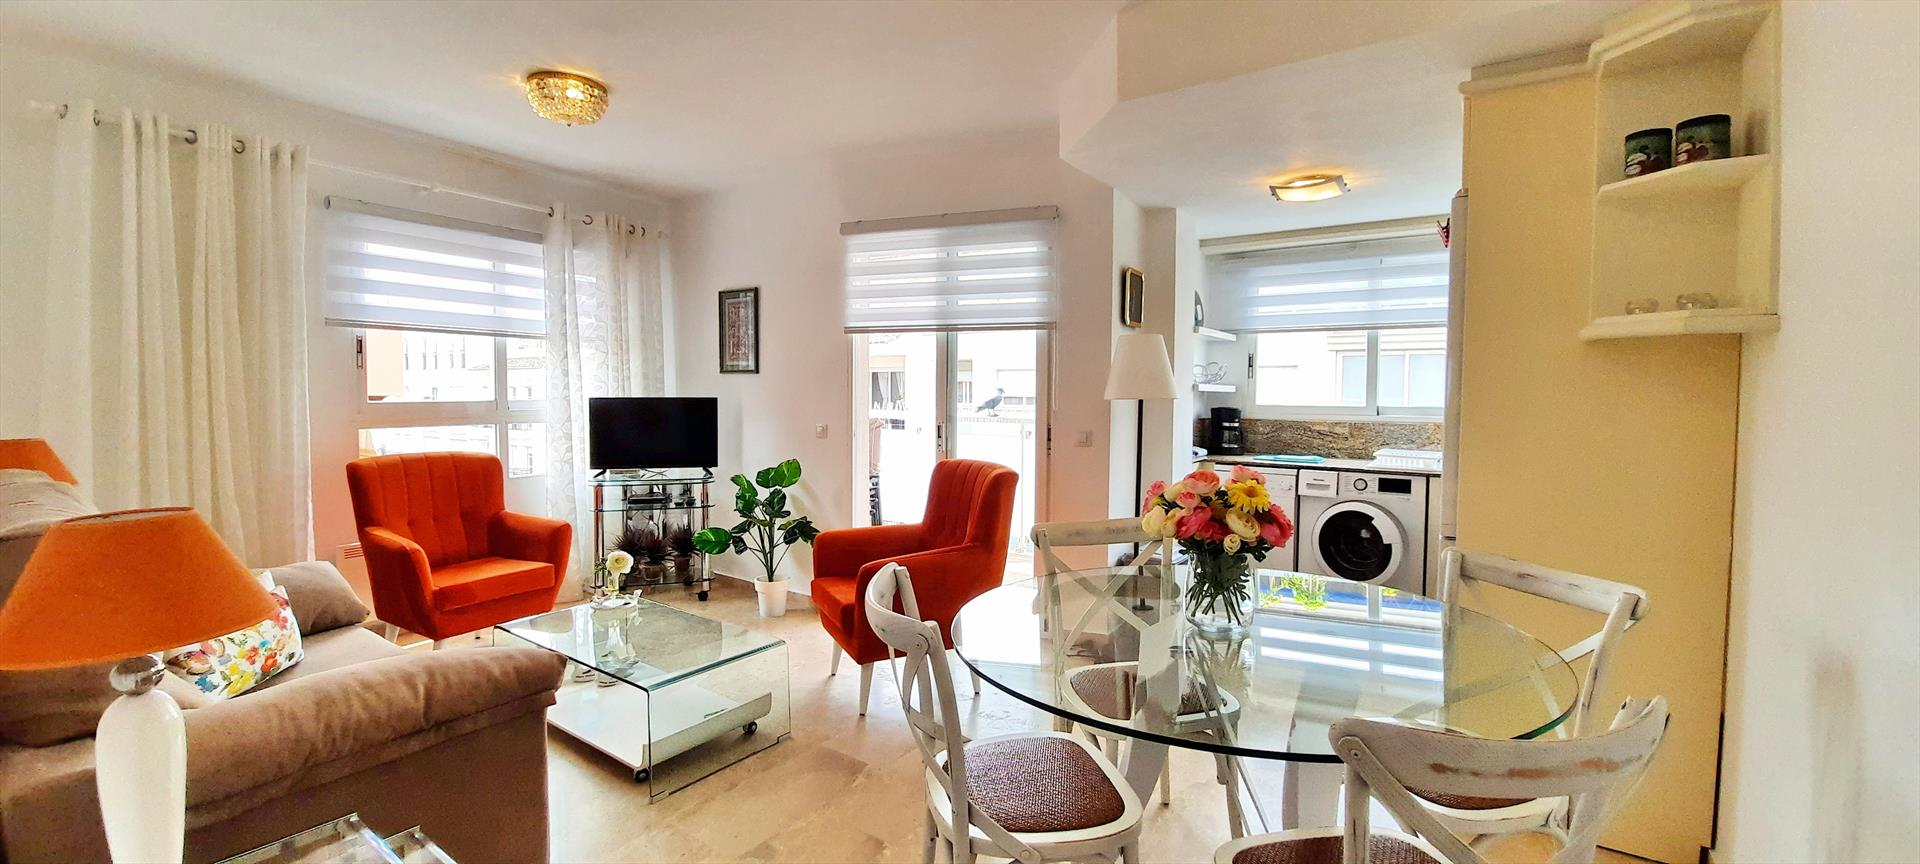 Mar y Sol,Wonderful and comfortable apartment in Moraira, on the Costa Blanca, Spain for 4 persons.....